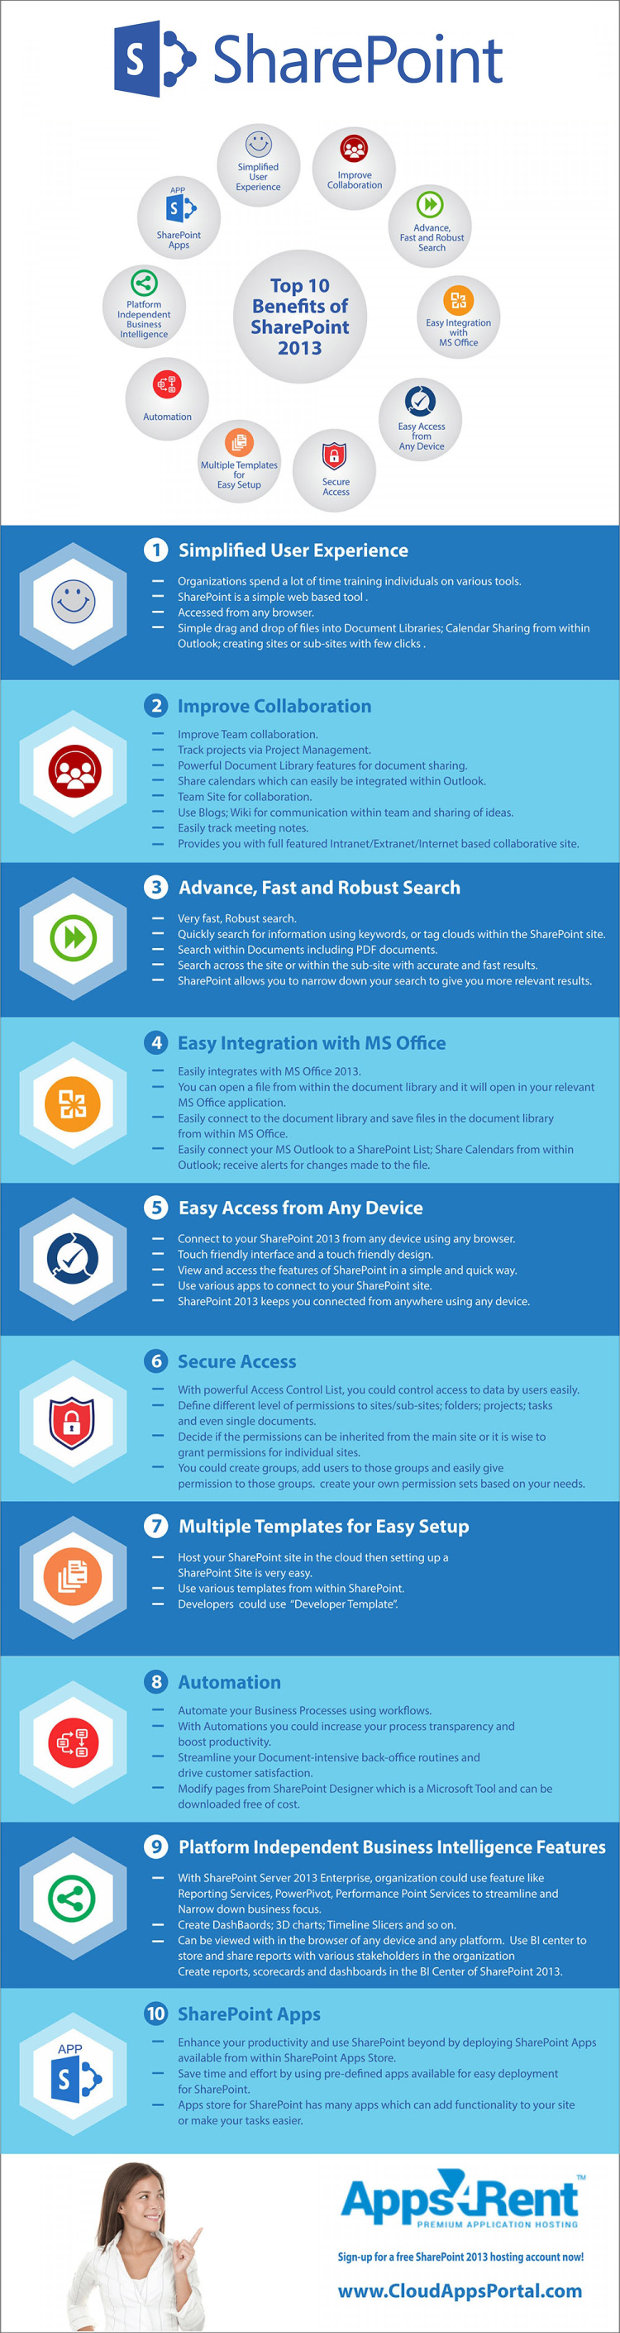 Top 10 benefits of Sharepoint 2013 - Infographic